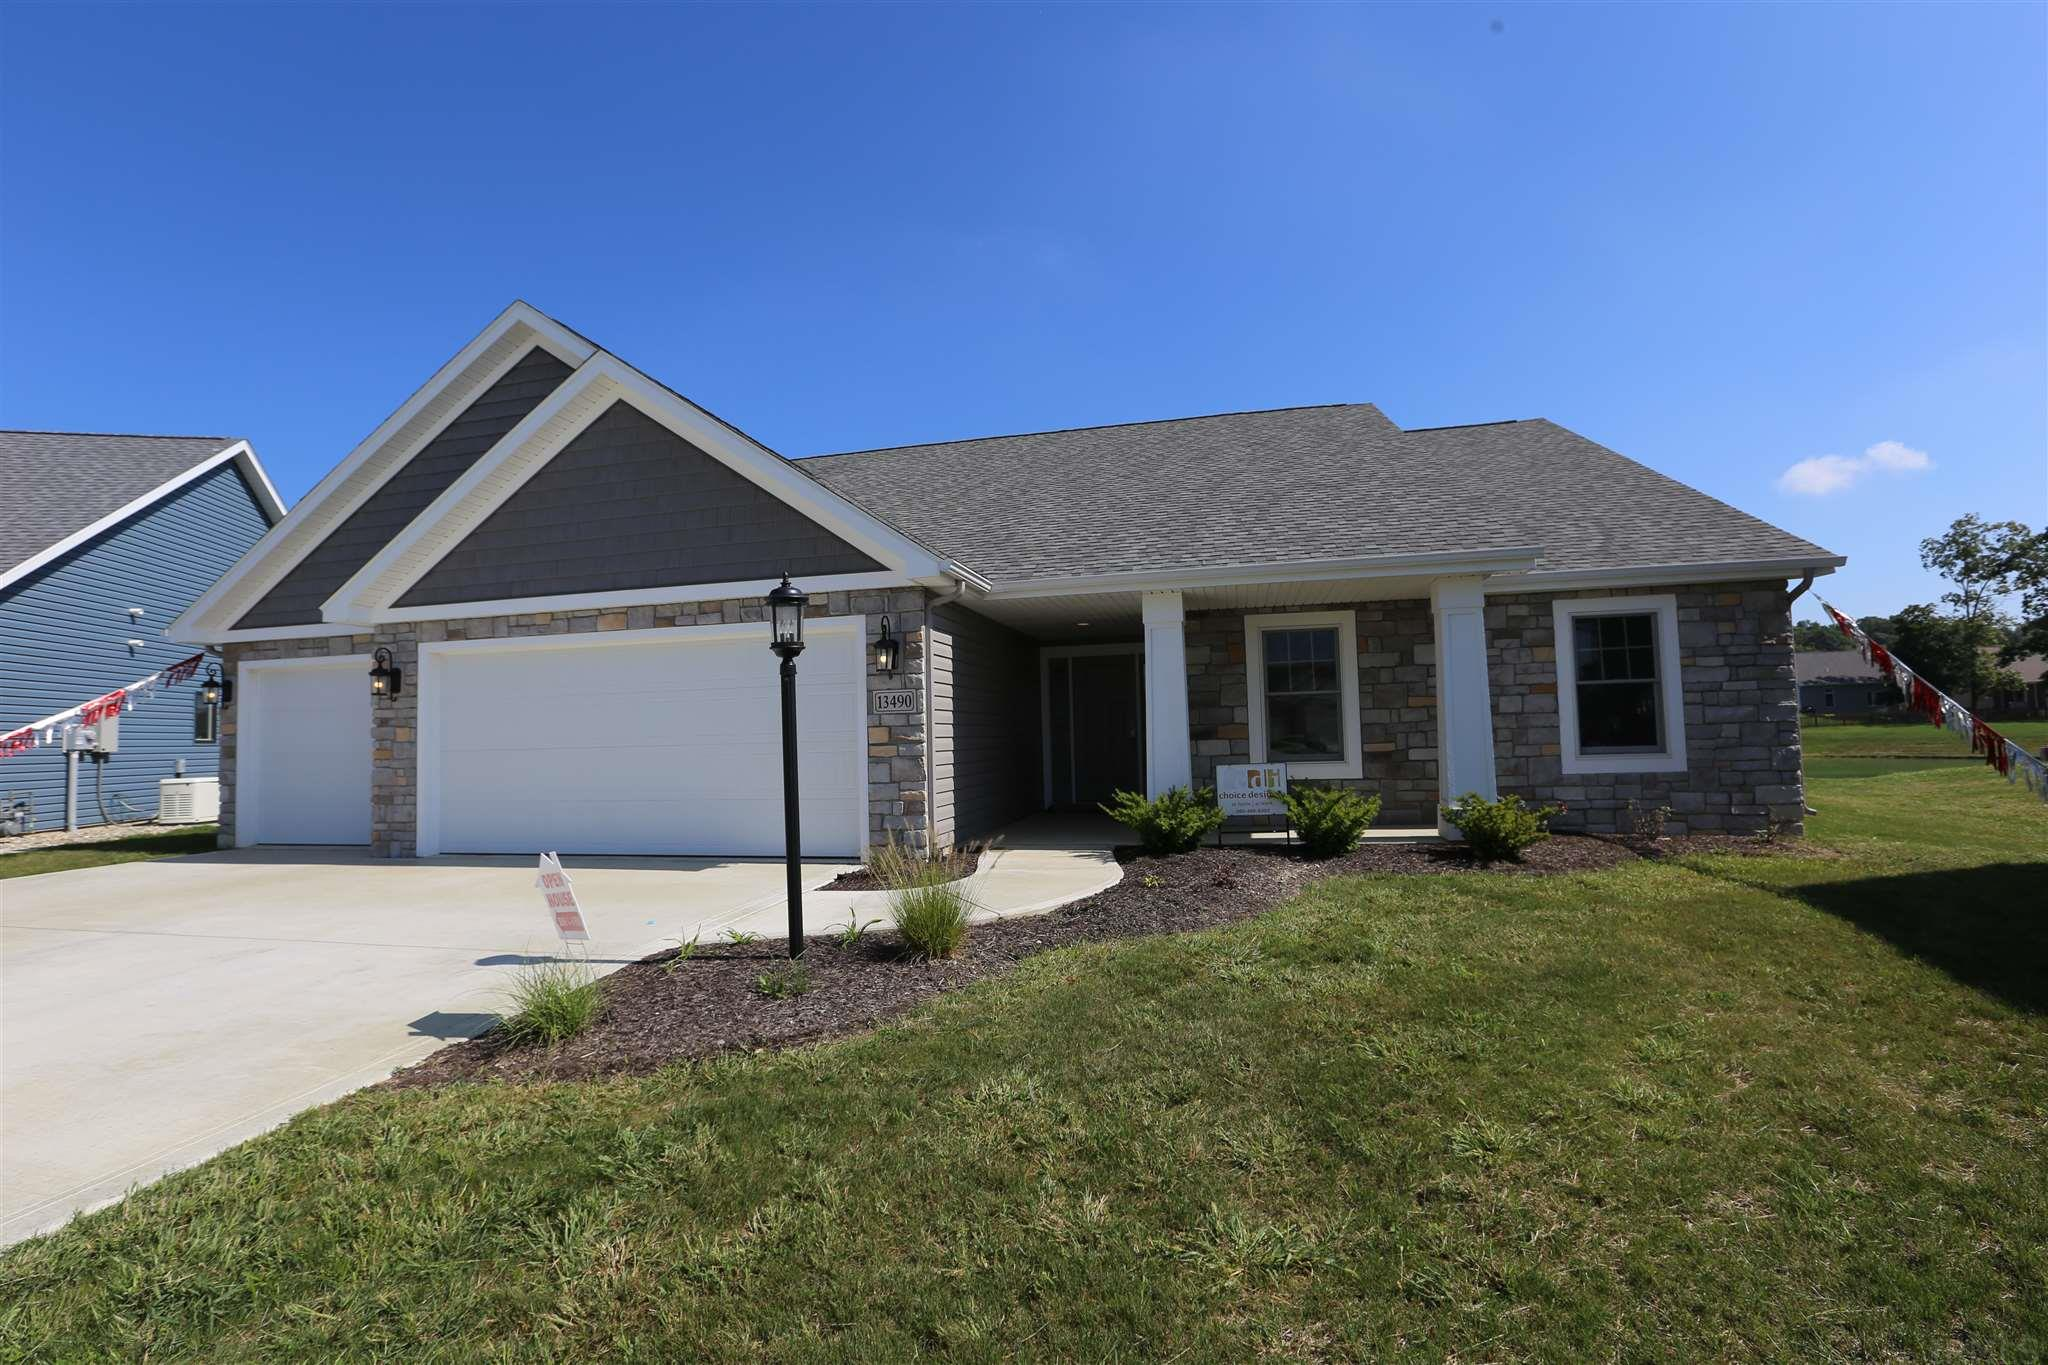 13490 Martingale Cove, Grabill, IN 46741